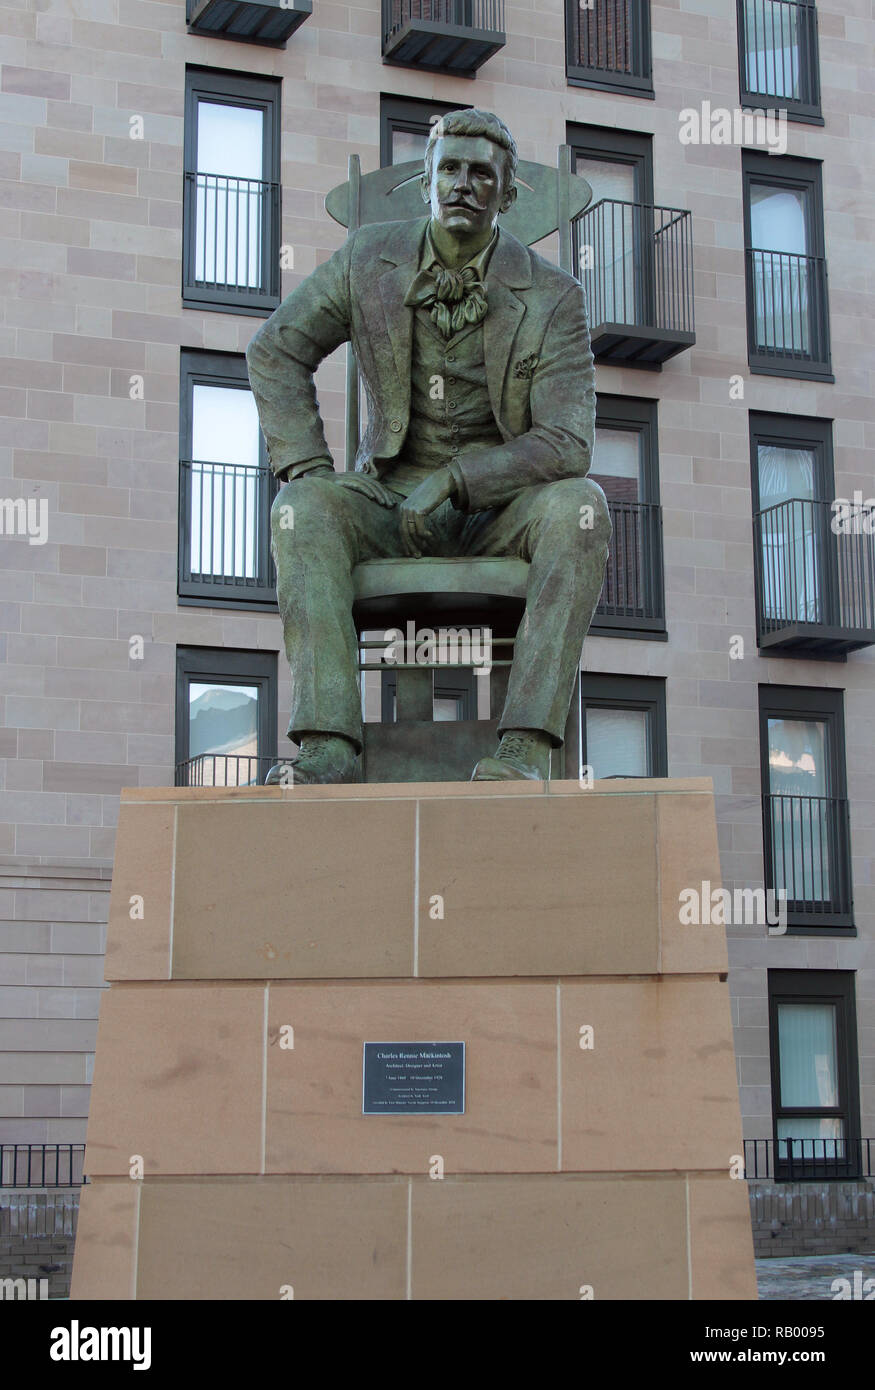 This lifelike statue of the great architect and designer, Charles Rennie Mackintosh, was unveiled in Glasgow in 2018 to commemorate his birthday, 150 years ago, and 90 years since his death. His most famous work was the Glasgow School of Art which has, sadly been burnt down. The statue is the work of Andy Scott. Alan Wylie/ALAMY © - Stock Image